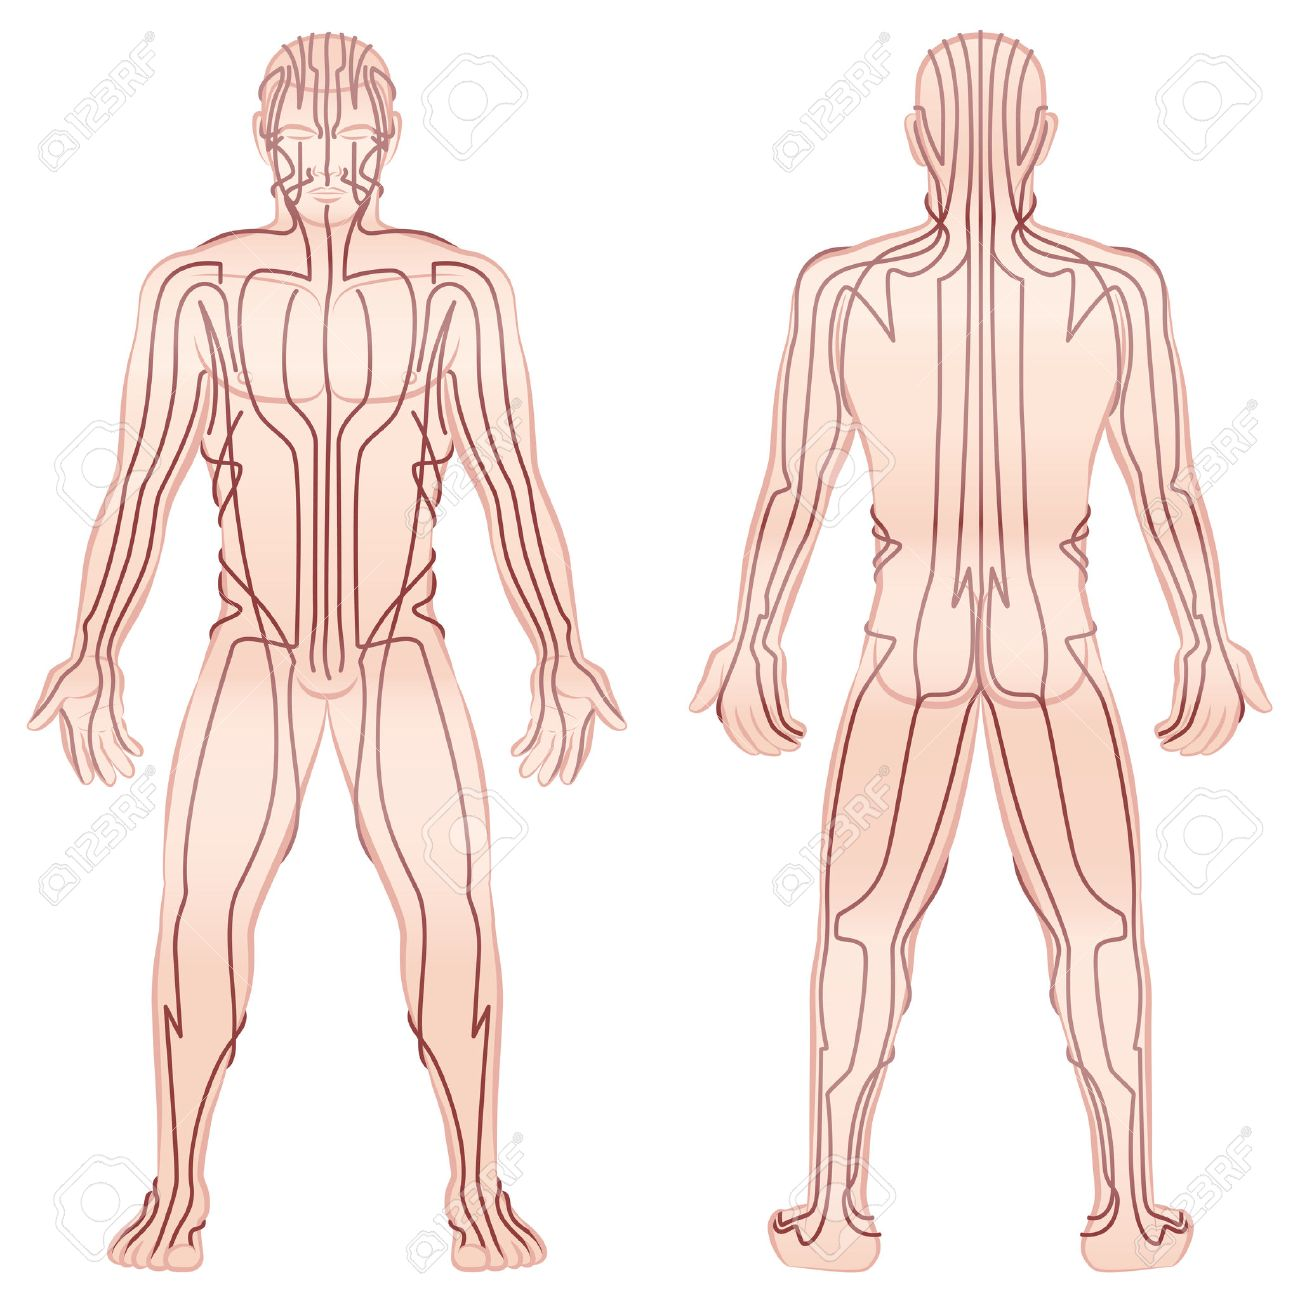 Meridians - meditating man with main acupuncture meridians - front view, back view - Isolated illustration on white background. Standard-Bild - 52544550